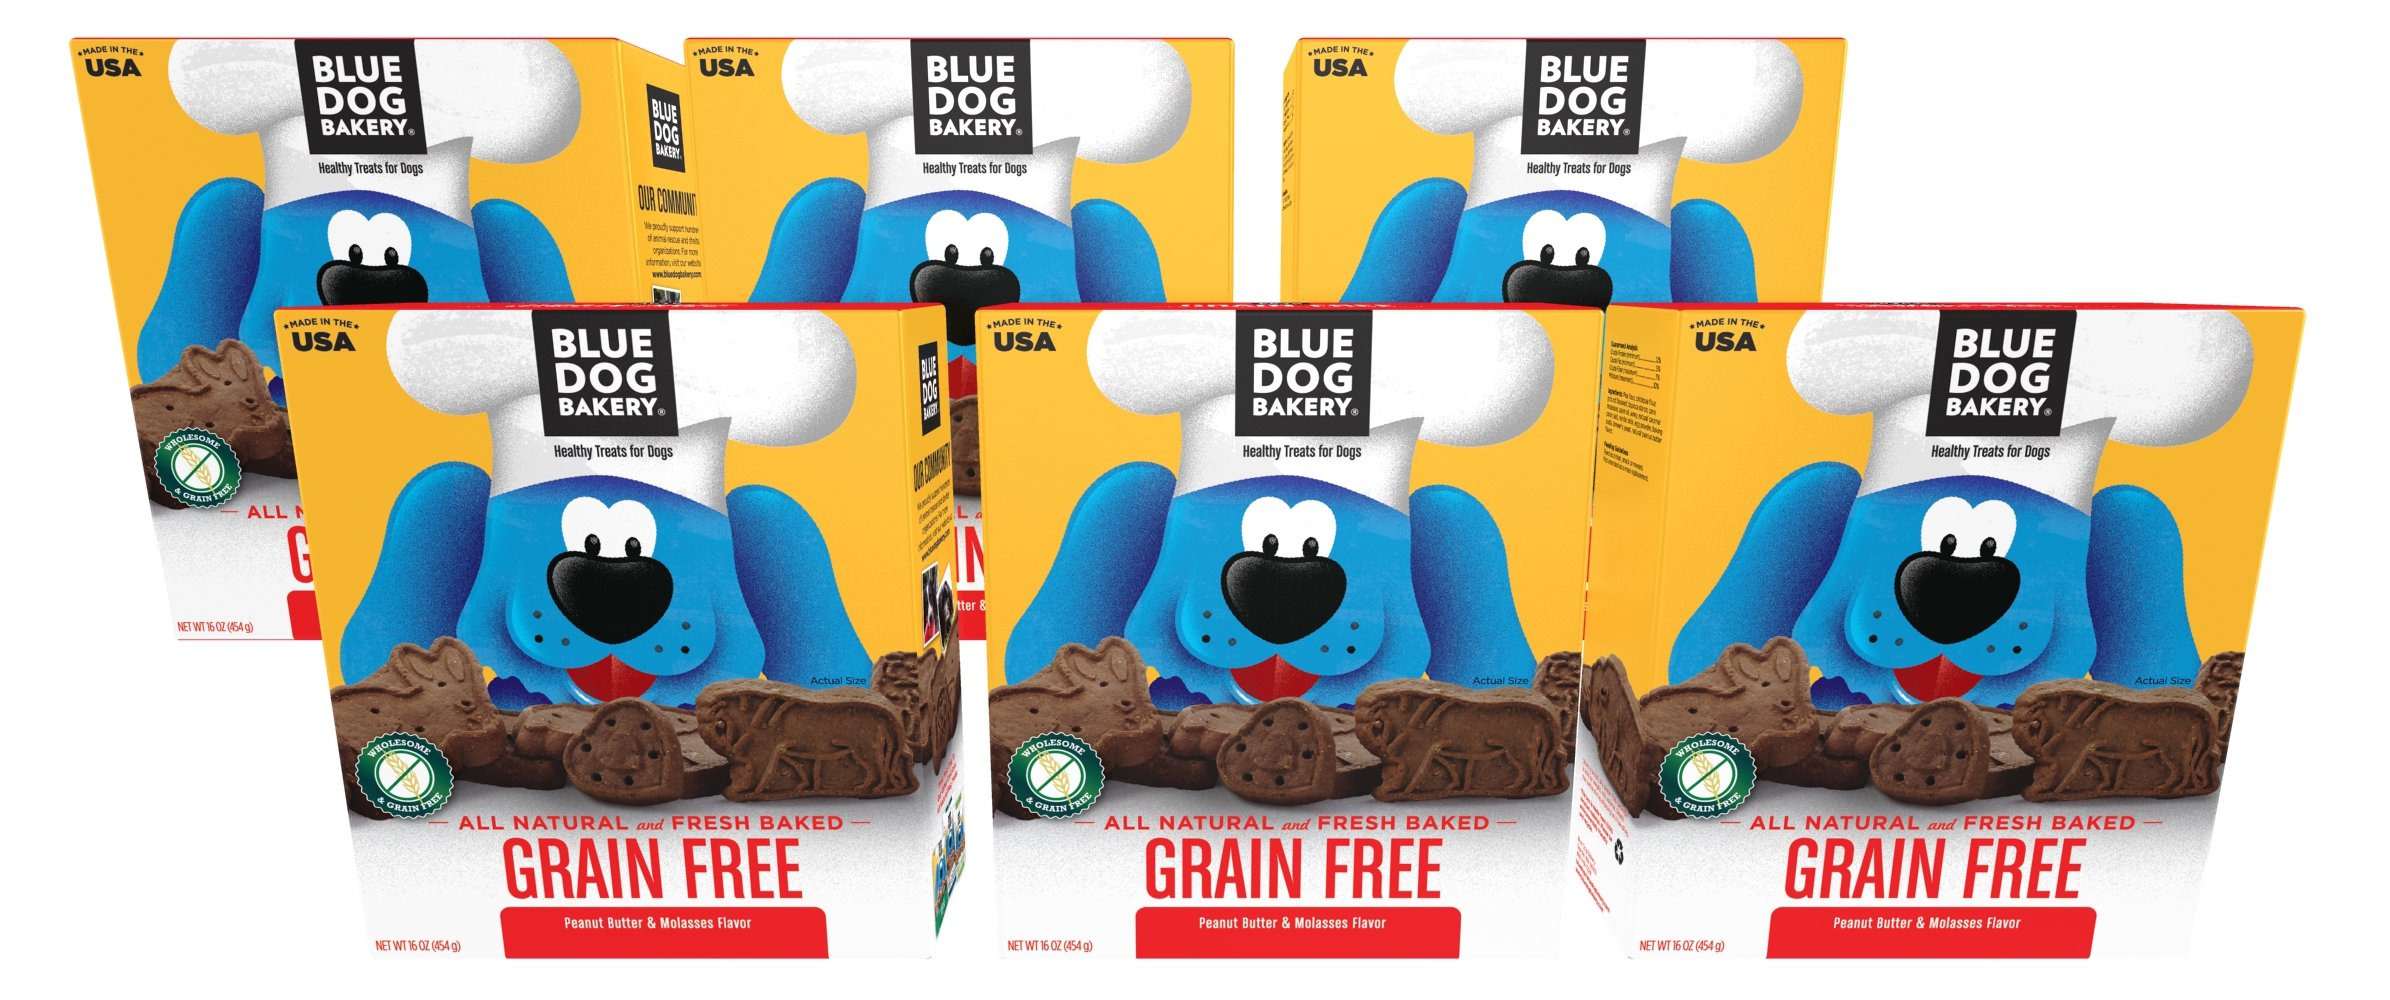 Blue Dog Bakery | Grain-Free Dog Biscuits | All-Natural | Peanut Butter & Molasses | 16oz (Pack of 6)